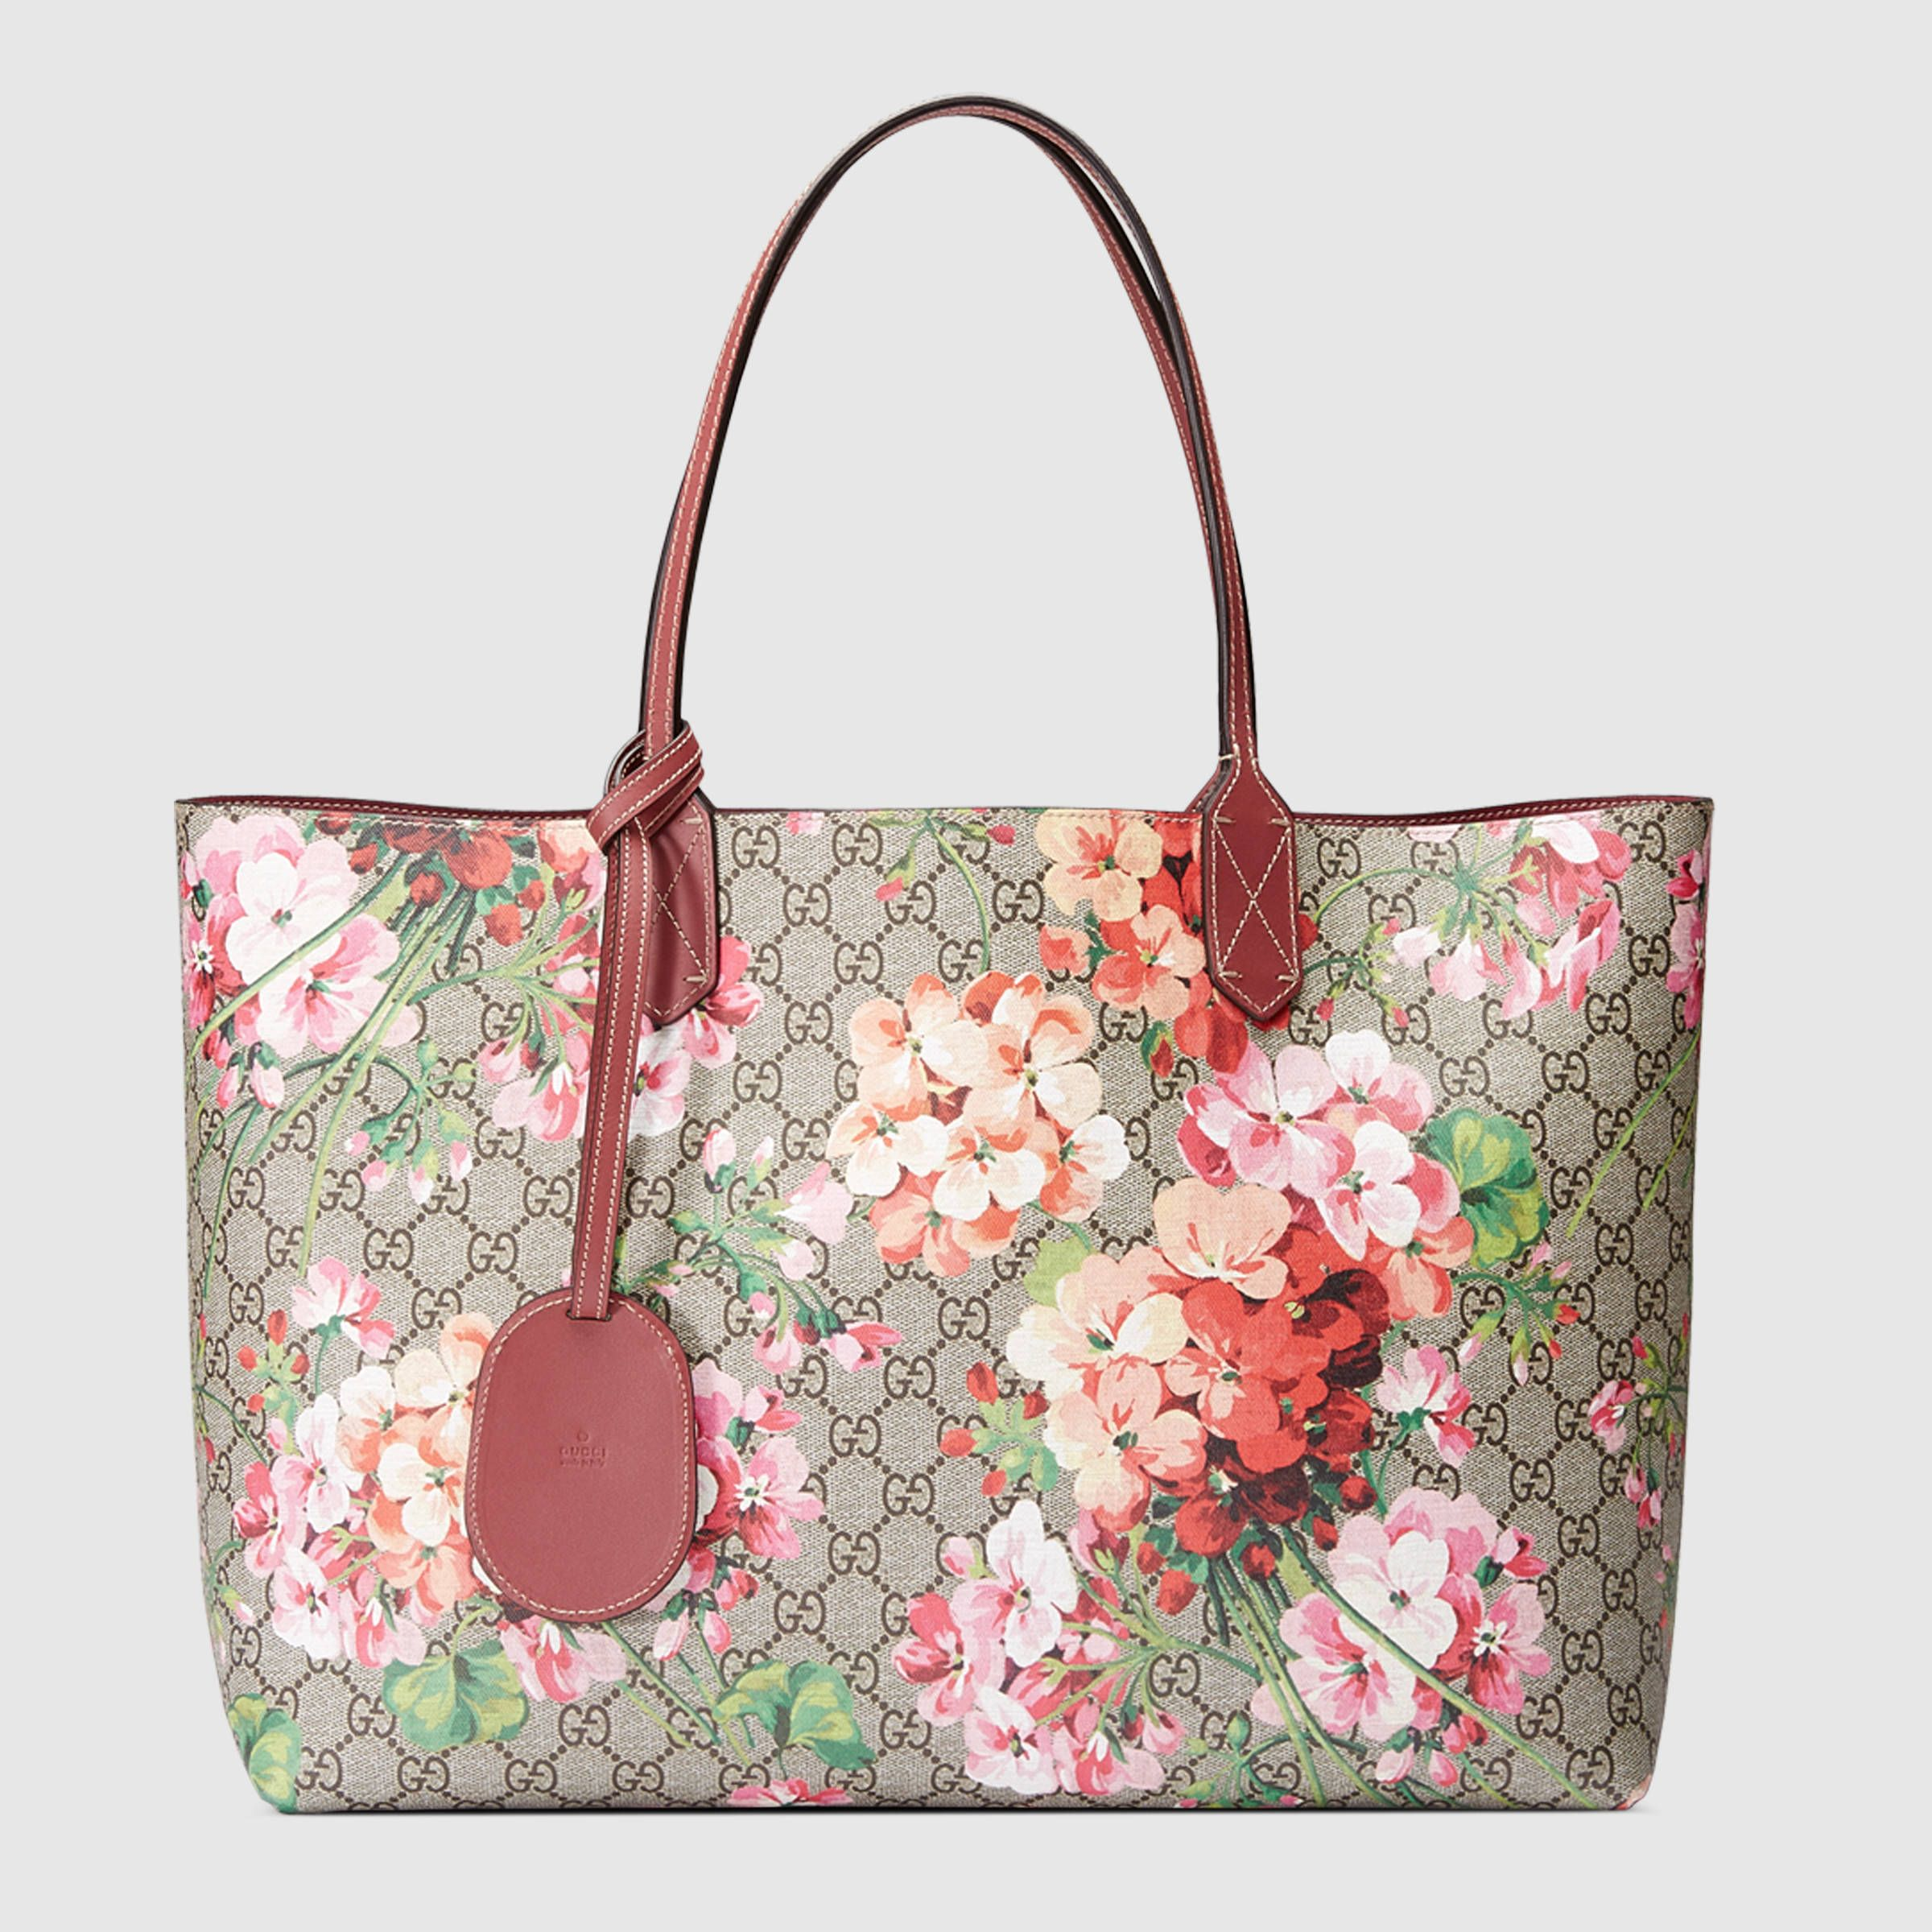 9f57f0a105e Reversible GG Blooms leather tote